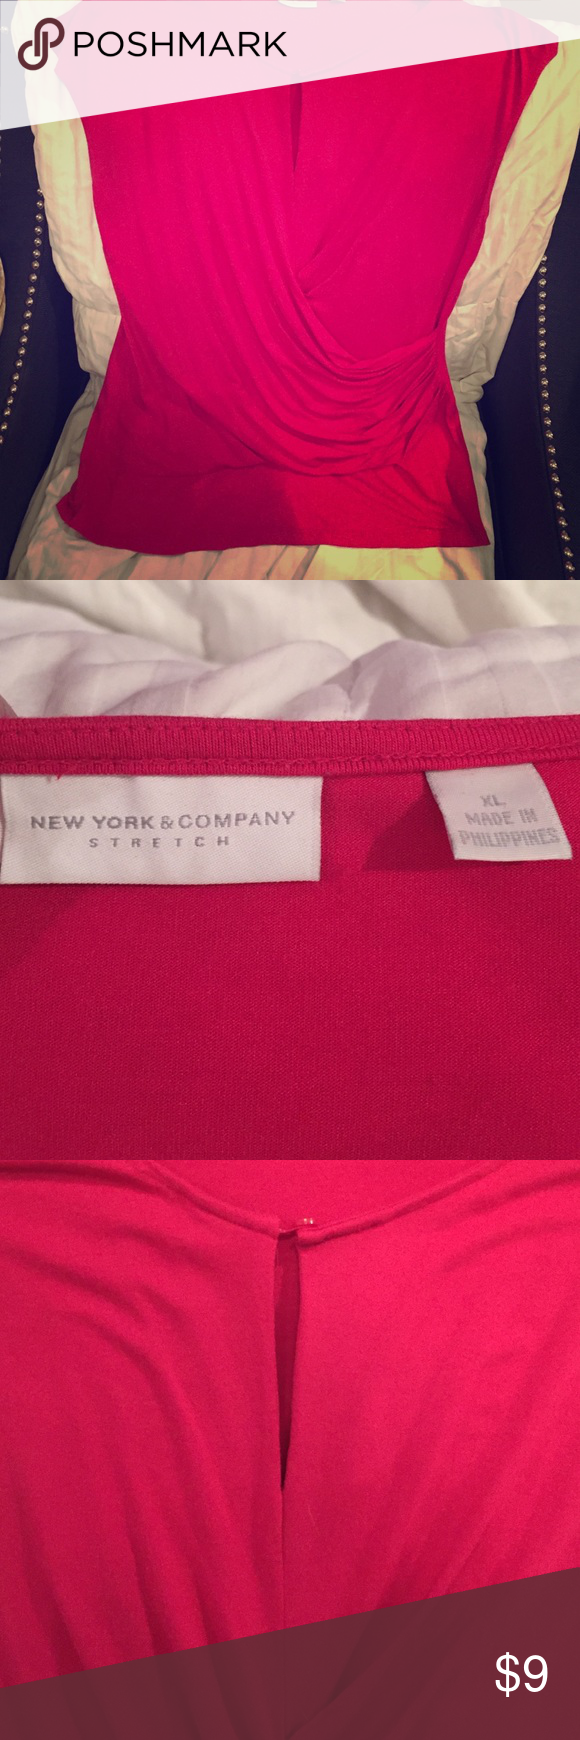 New York and company stretch top Beautiful bright pink top with keyhole neckline and rushing. Faux wrap.  Can be worn to work and later for happy hour! Tops